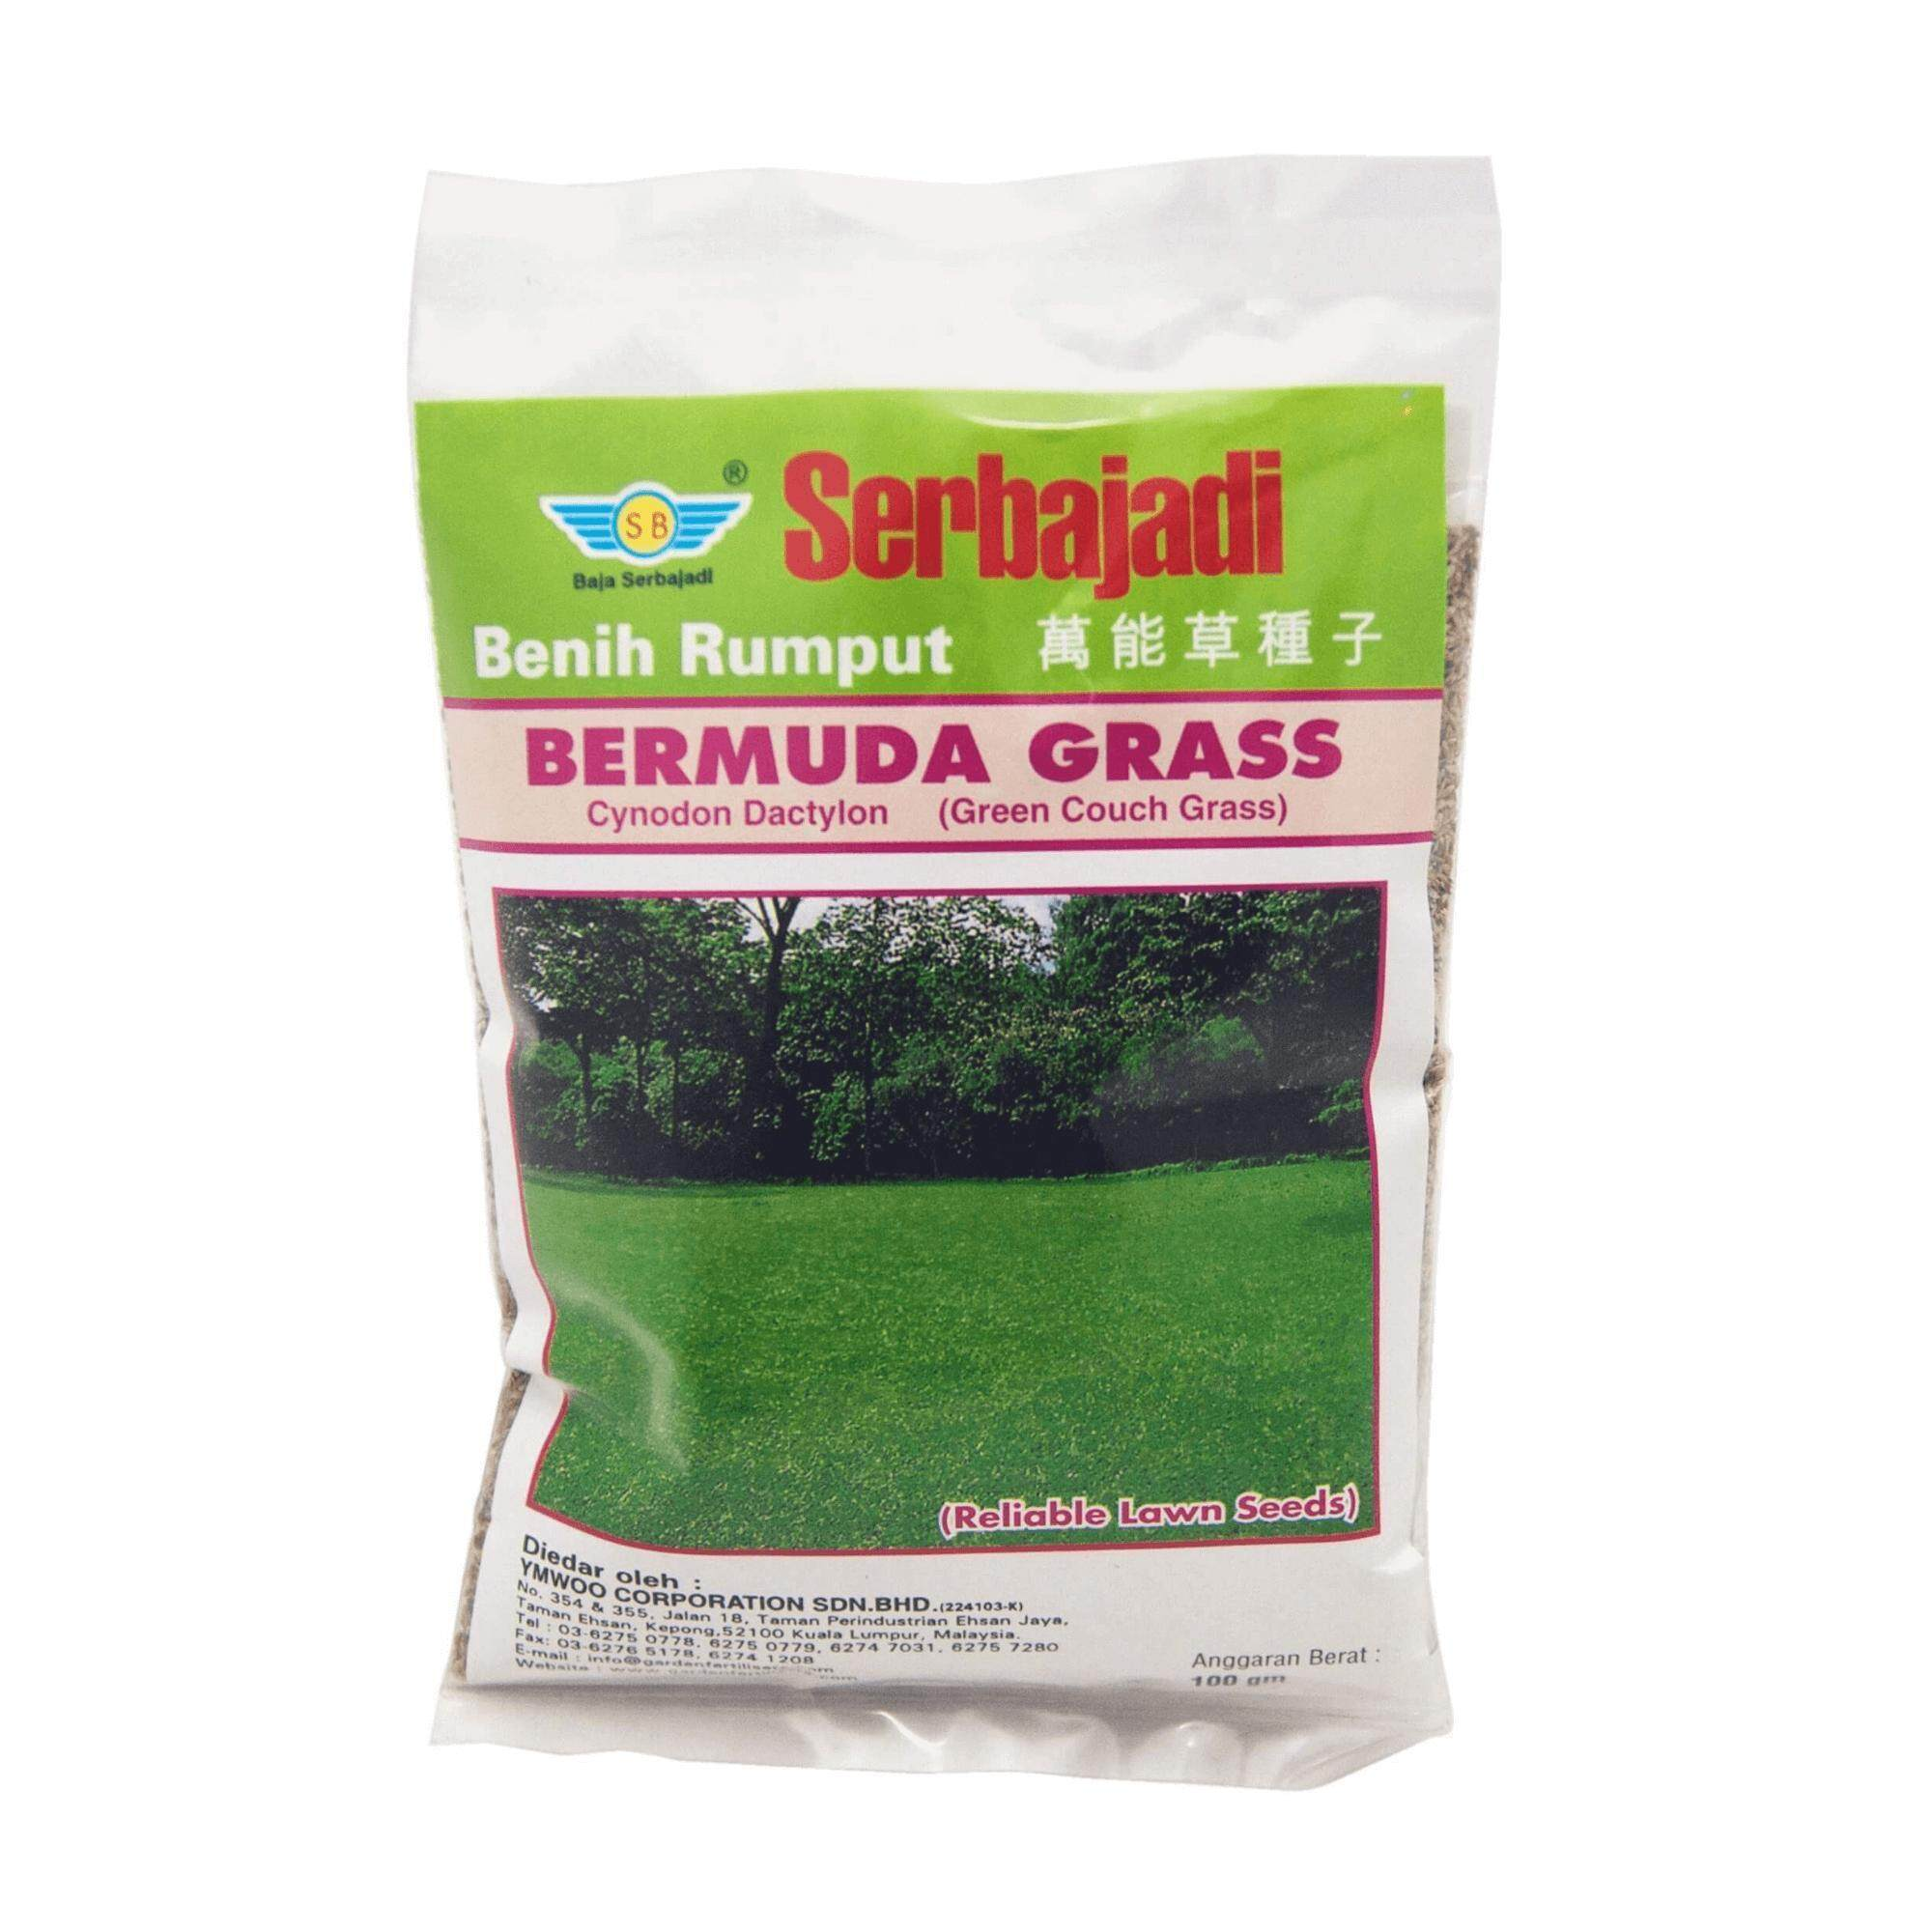 Serbajadi Bermuda Grass (100gm) (approx. 85sq ft)